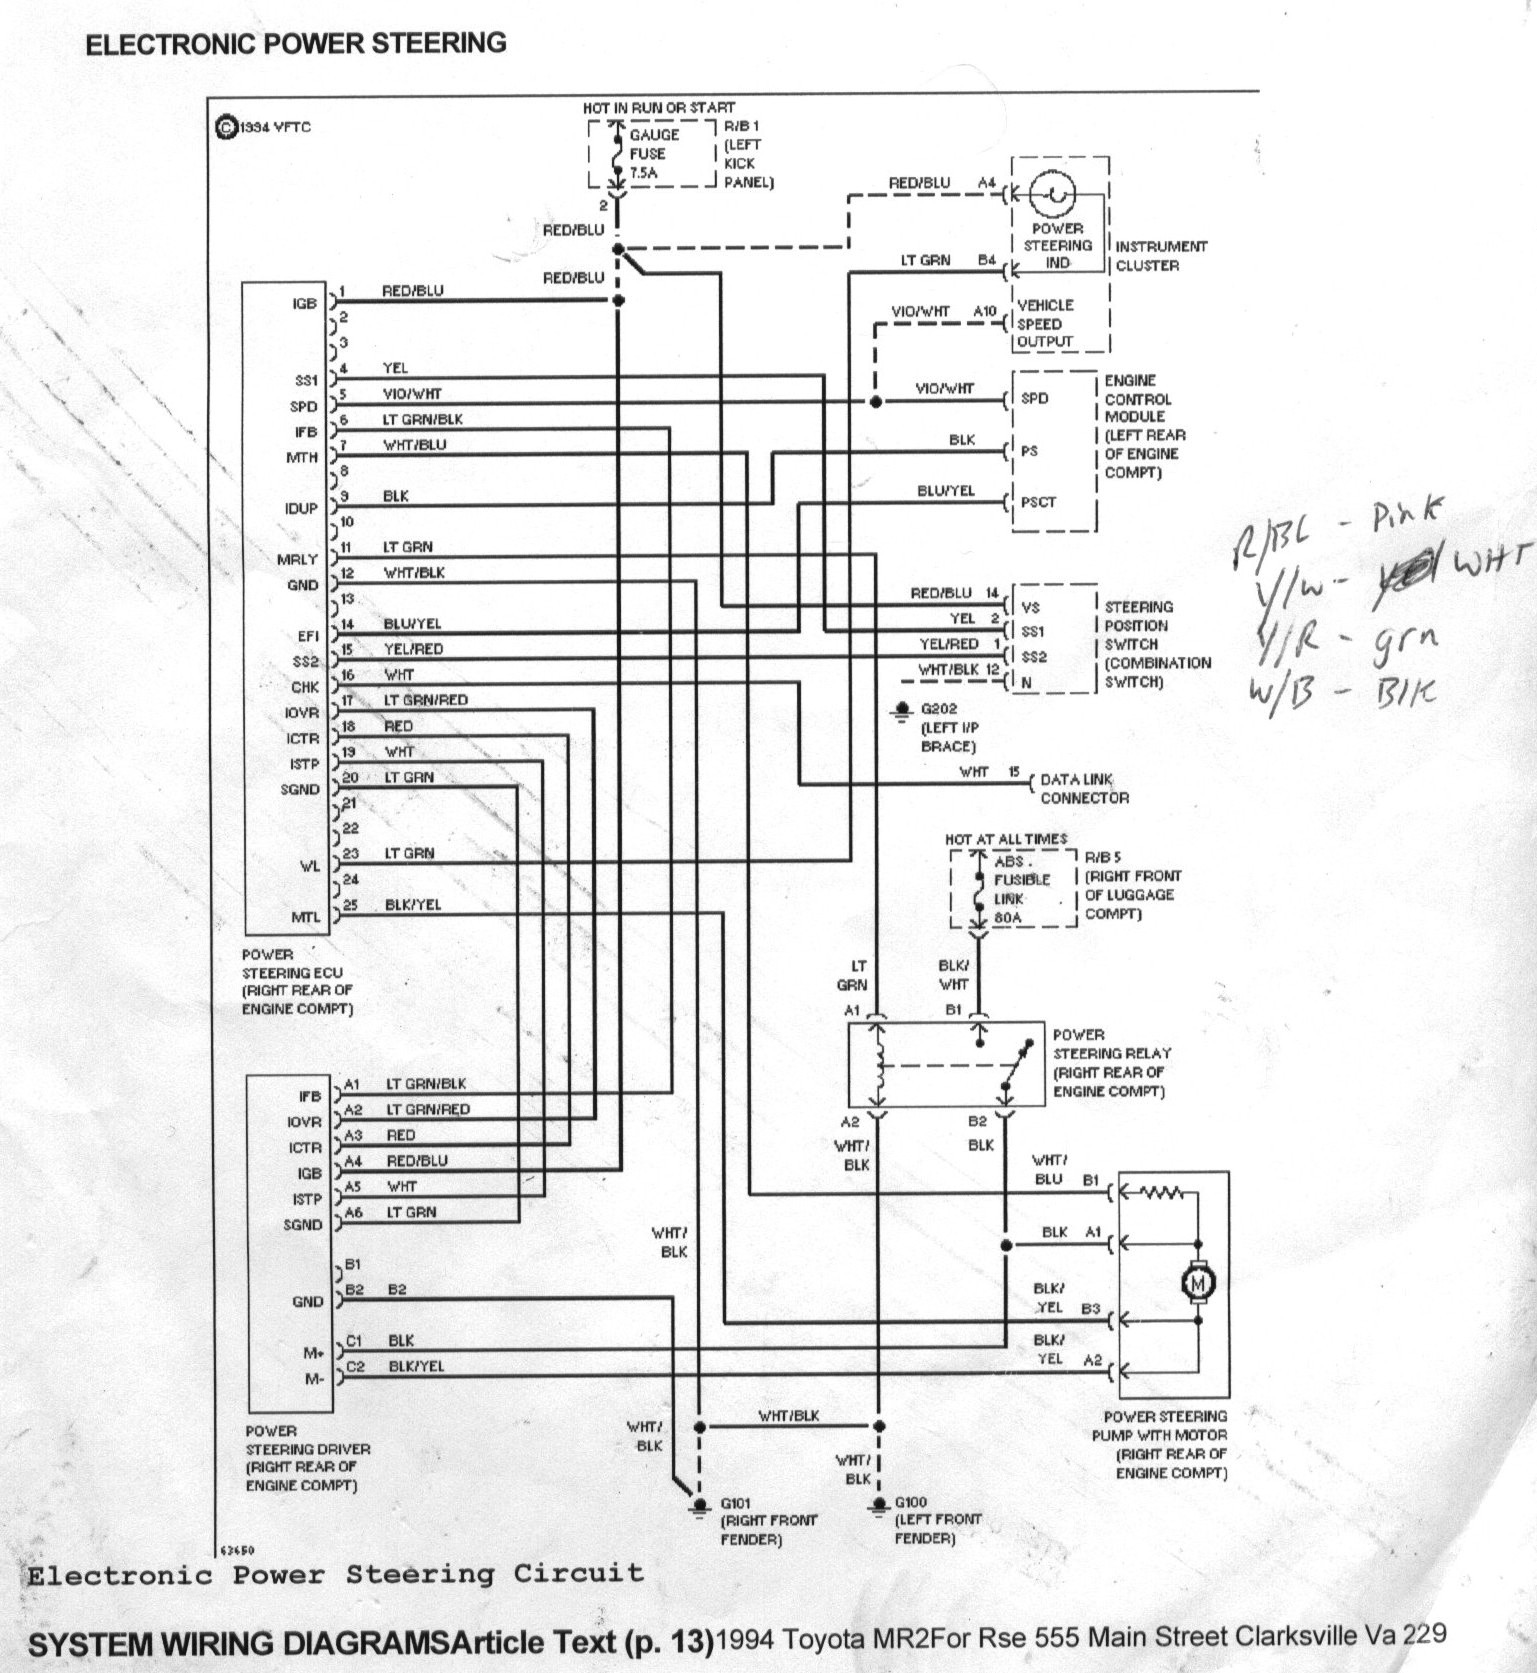 Wiring Diagram 5 Point Racing Harness 91 93 Toyota Mr2 Sw20 2 0l